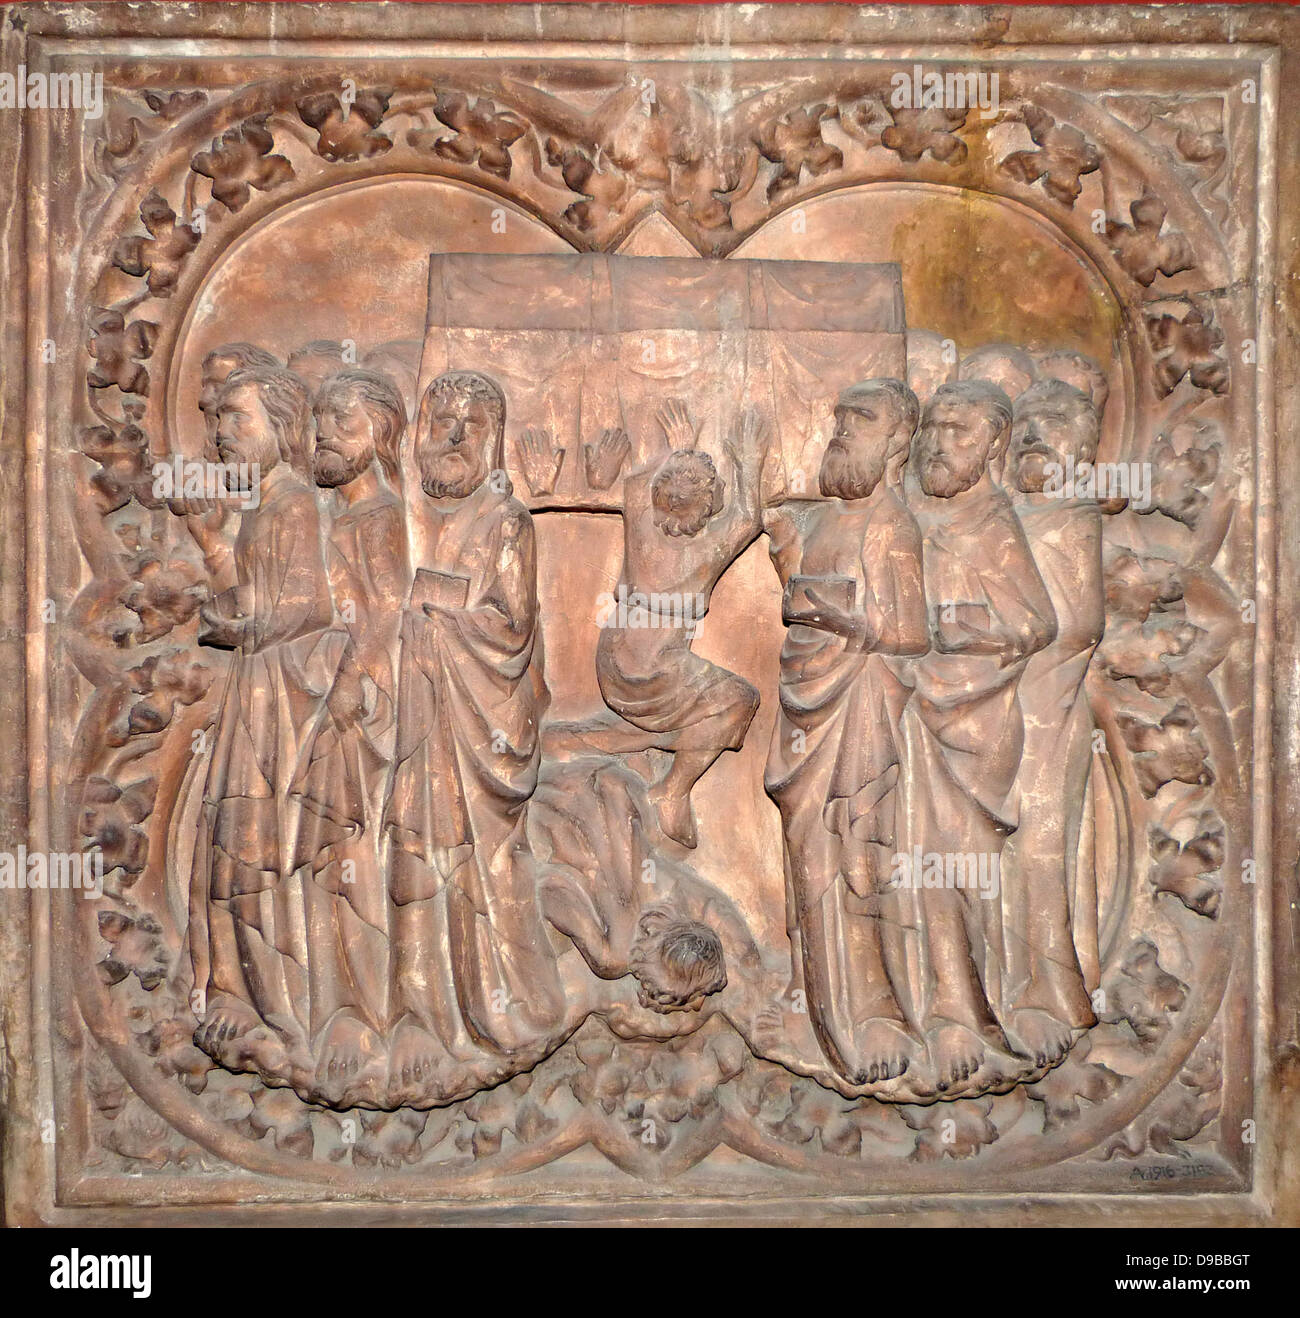 Plaster Cast, Paris, French.  The Coronation of the Virgin, carved in stone, on the north side of the exterior of - Stock Image